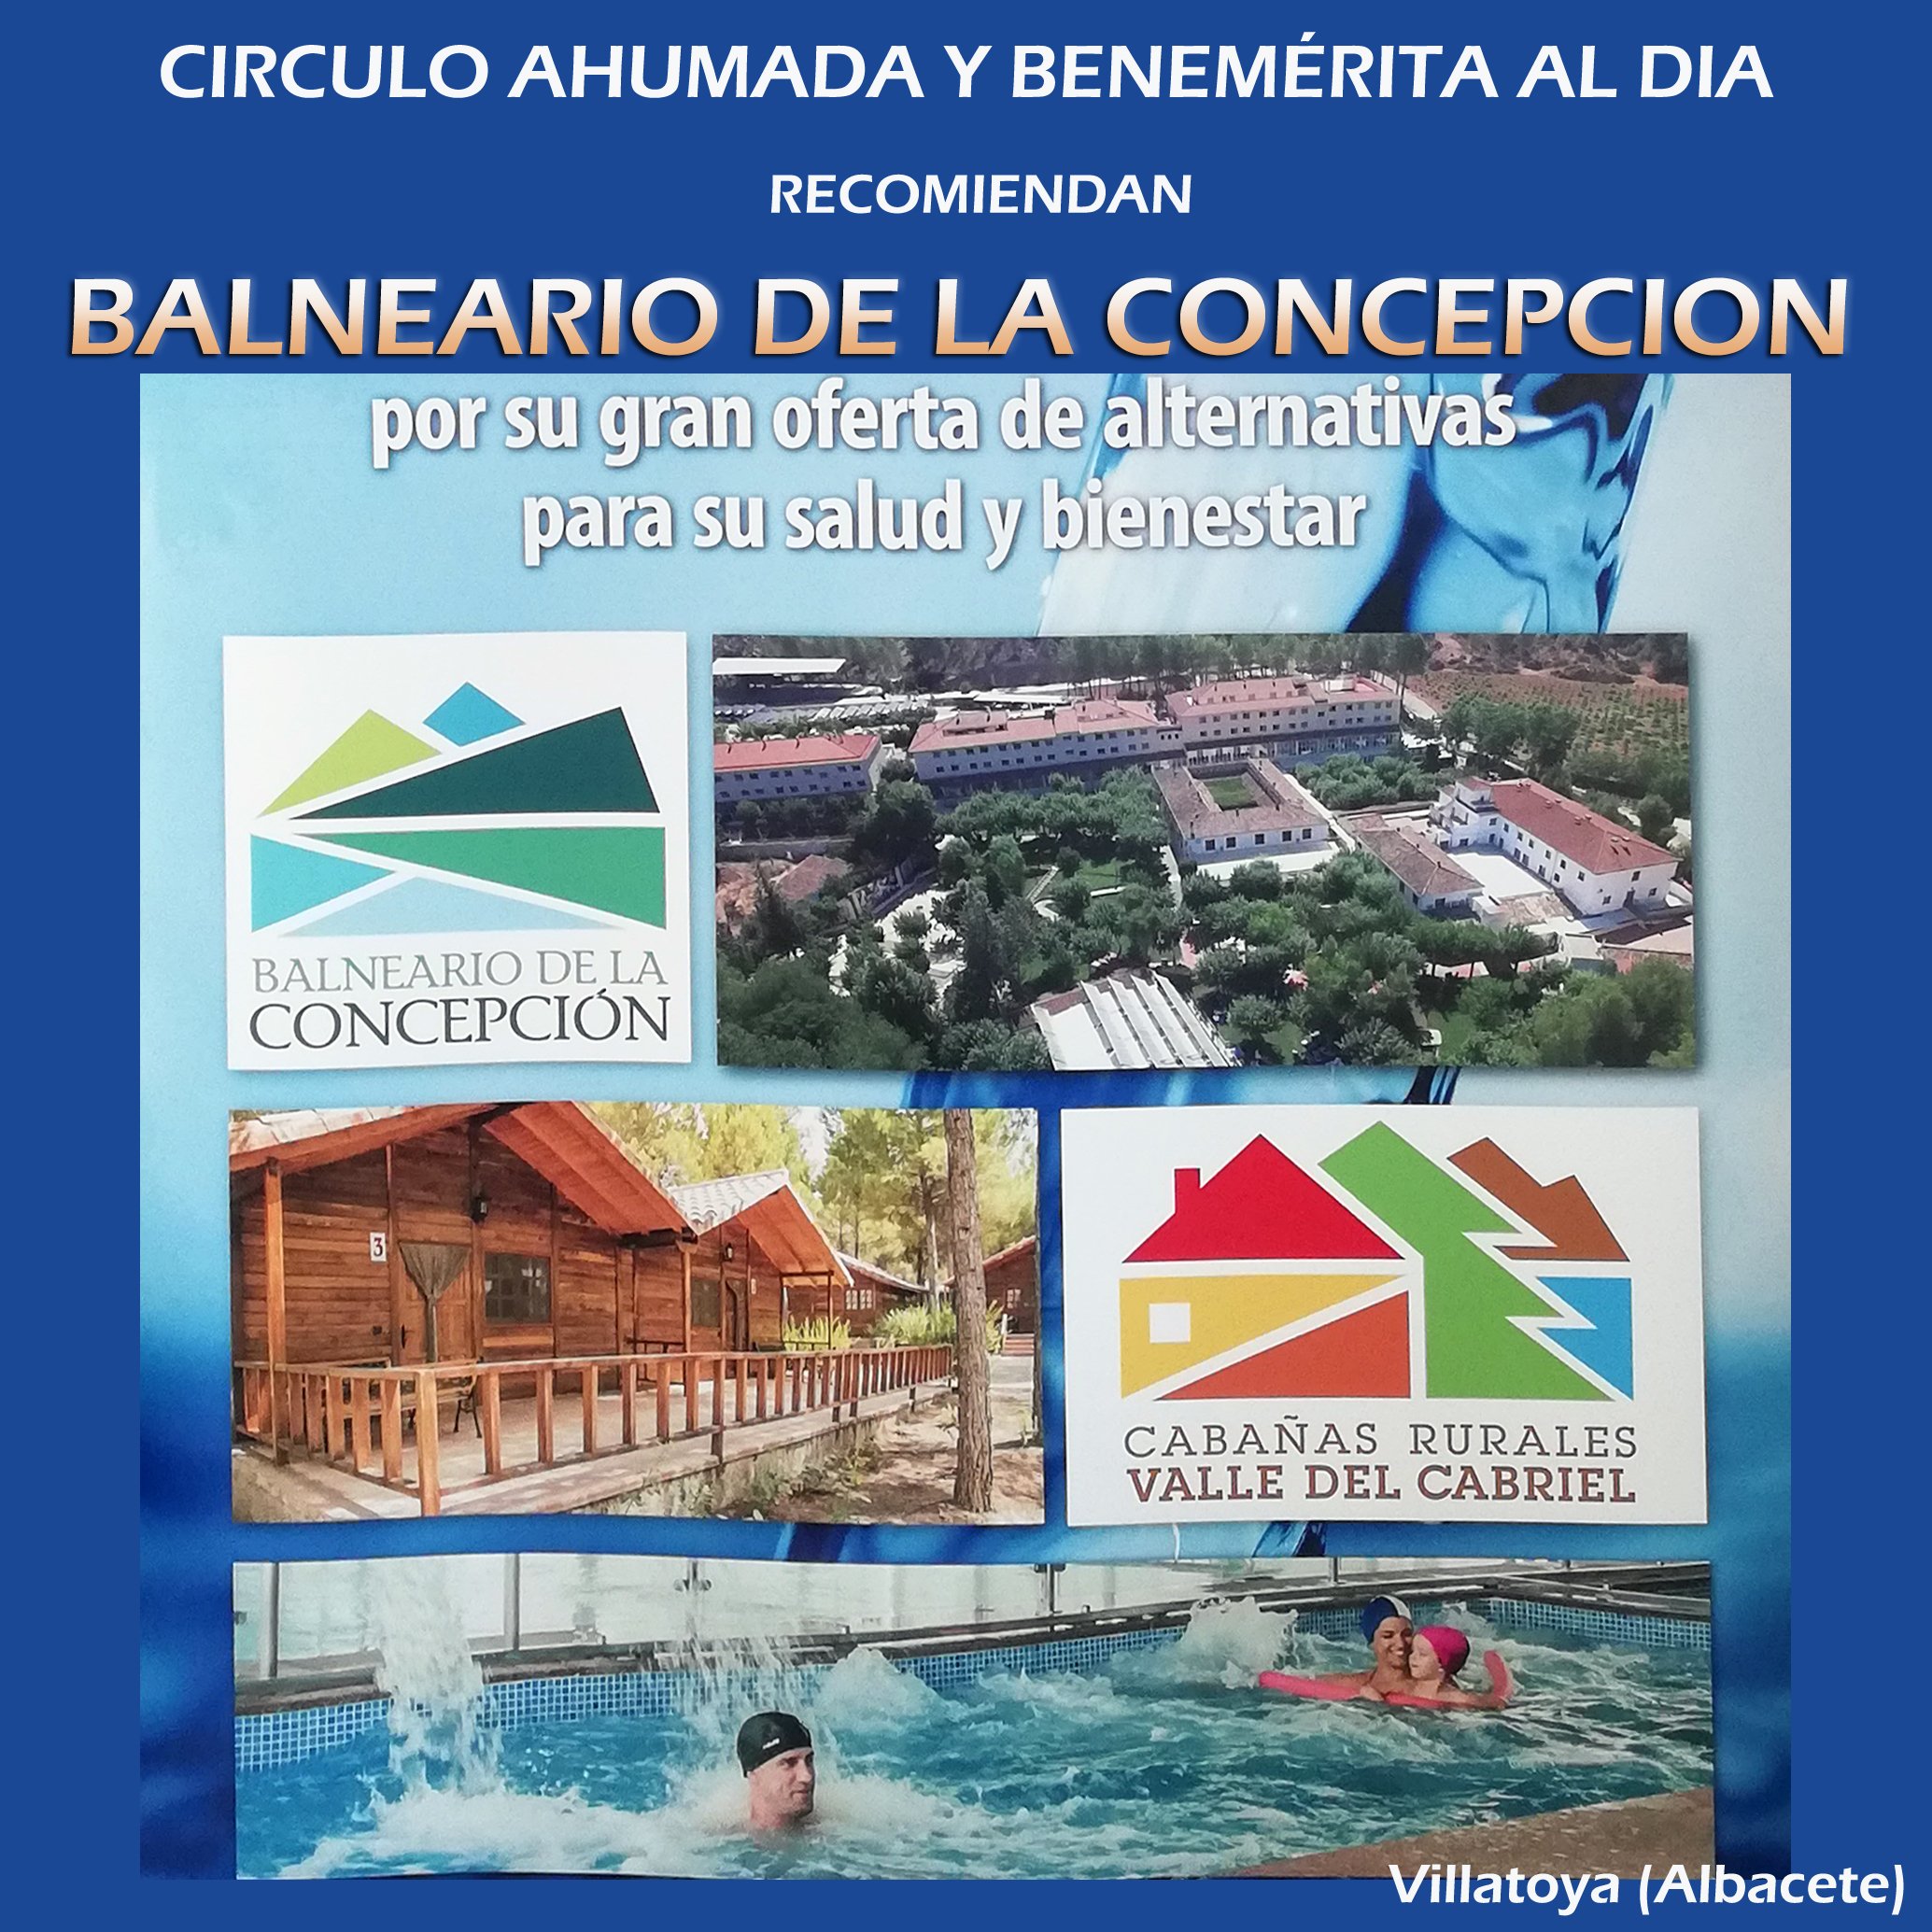 BALNEARIO DE LA CONCEPCION